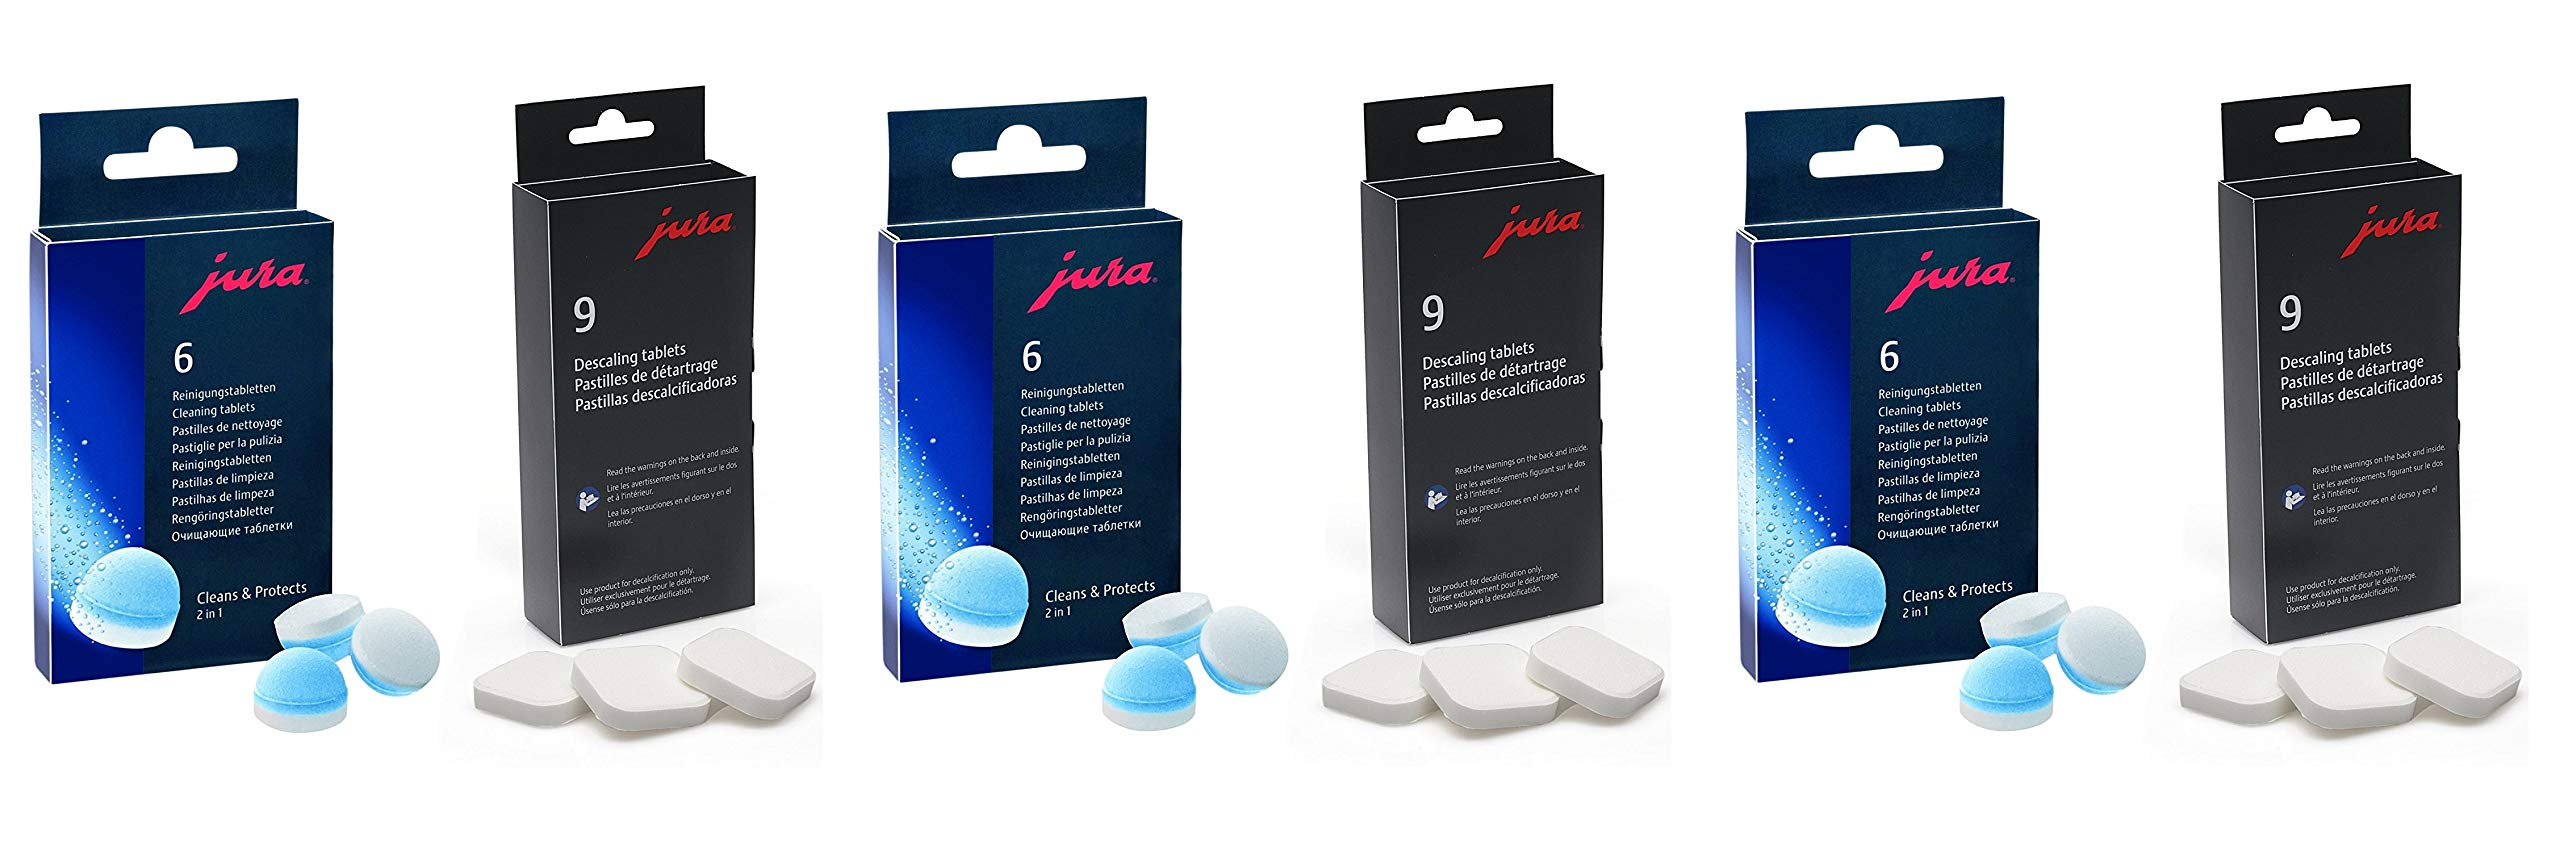 Descaling Tablets and Cleaning Tablets for Jura-Capresso Automatic Coffee and Espresso machines Combi pack (Pack of 3)